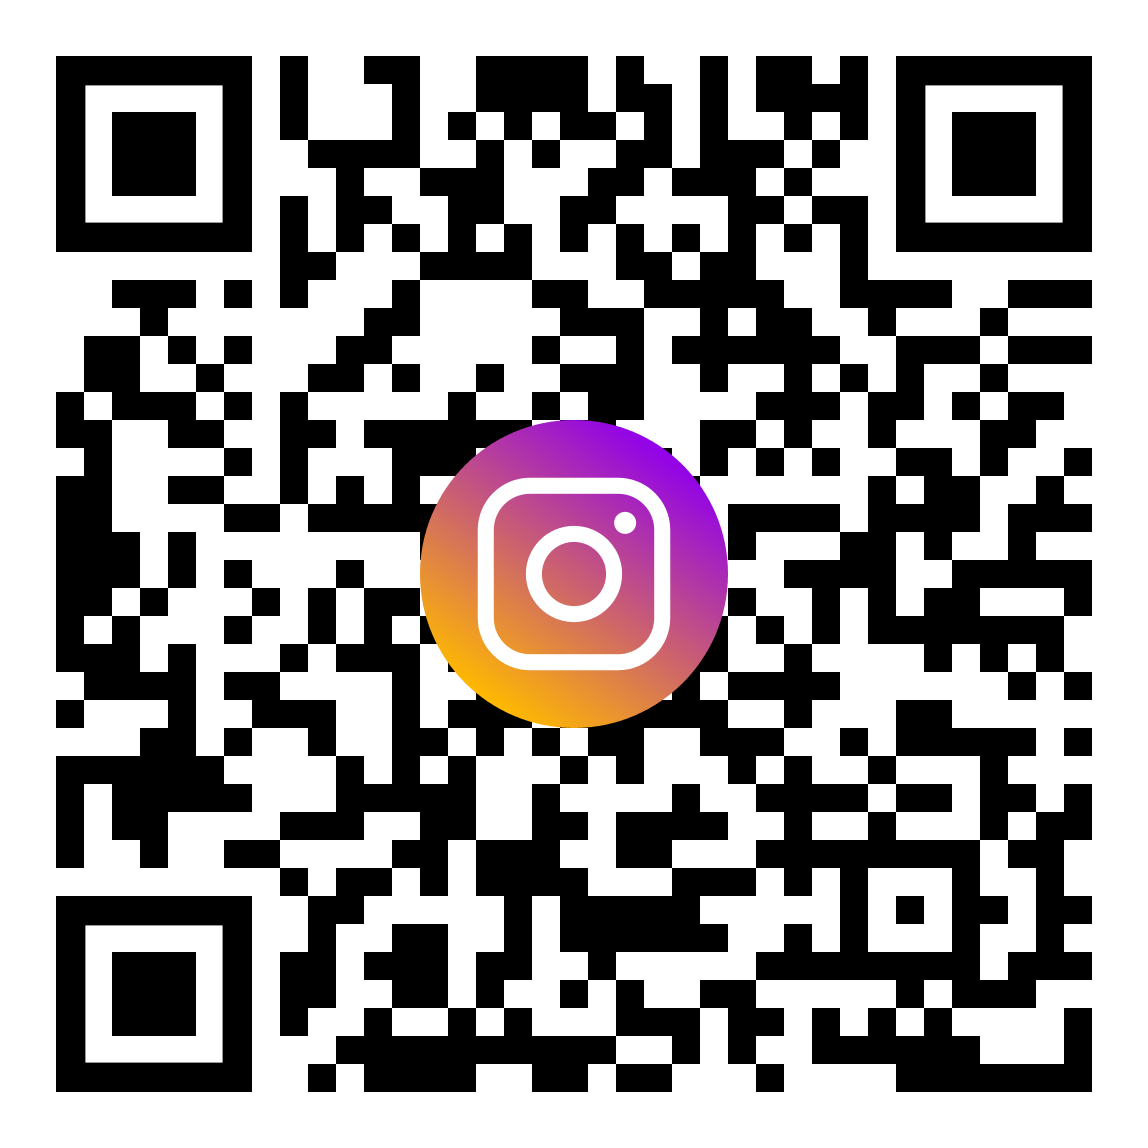 qr-code-1-dome